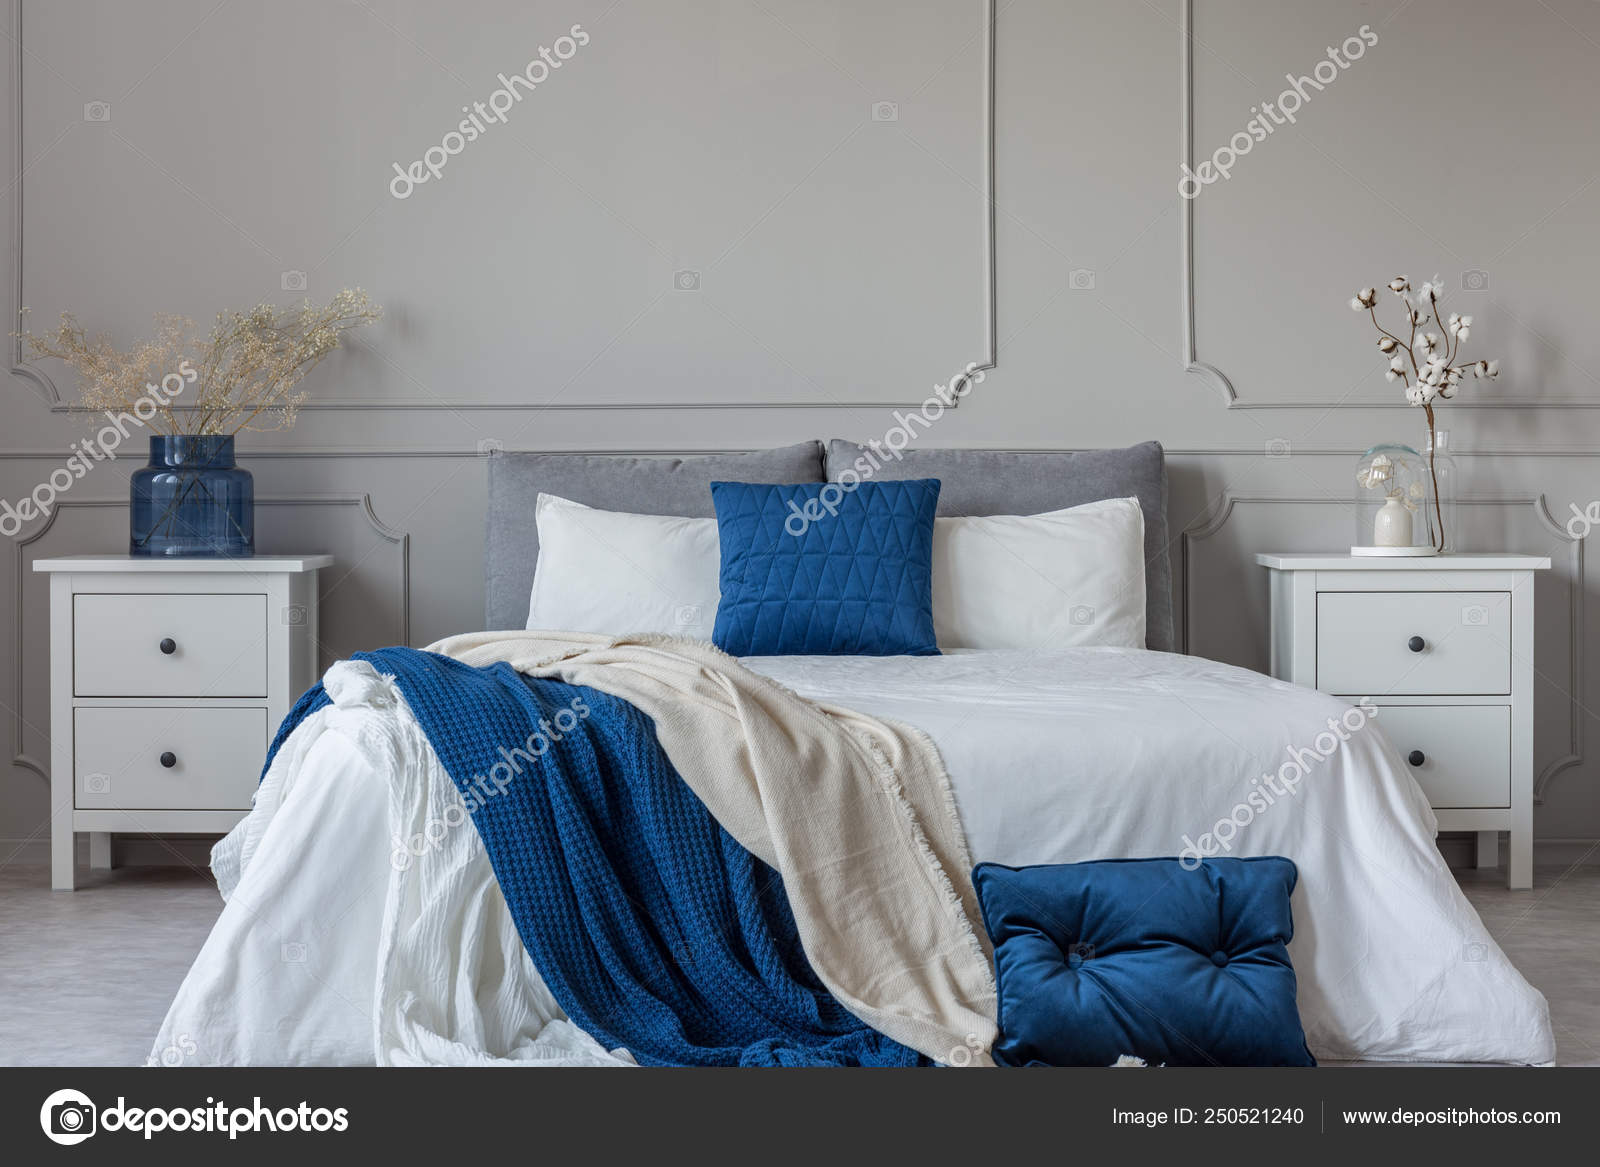 King Size Bed With Grey Blue And White Bedding Between Two